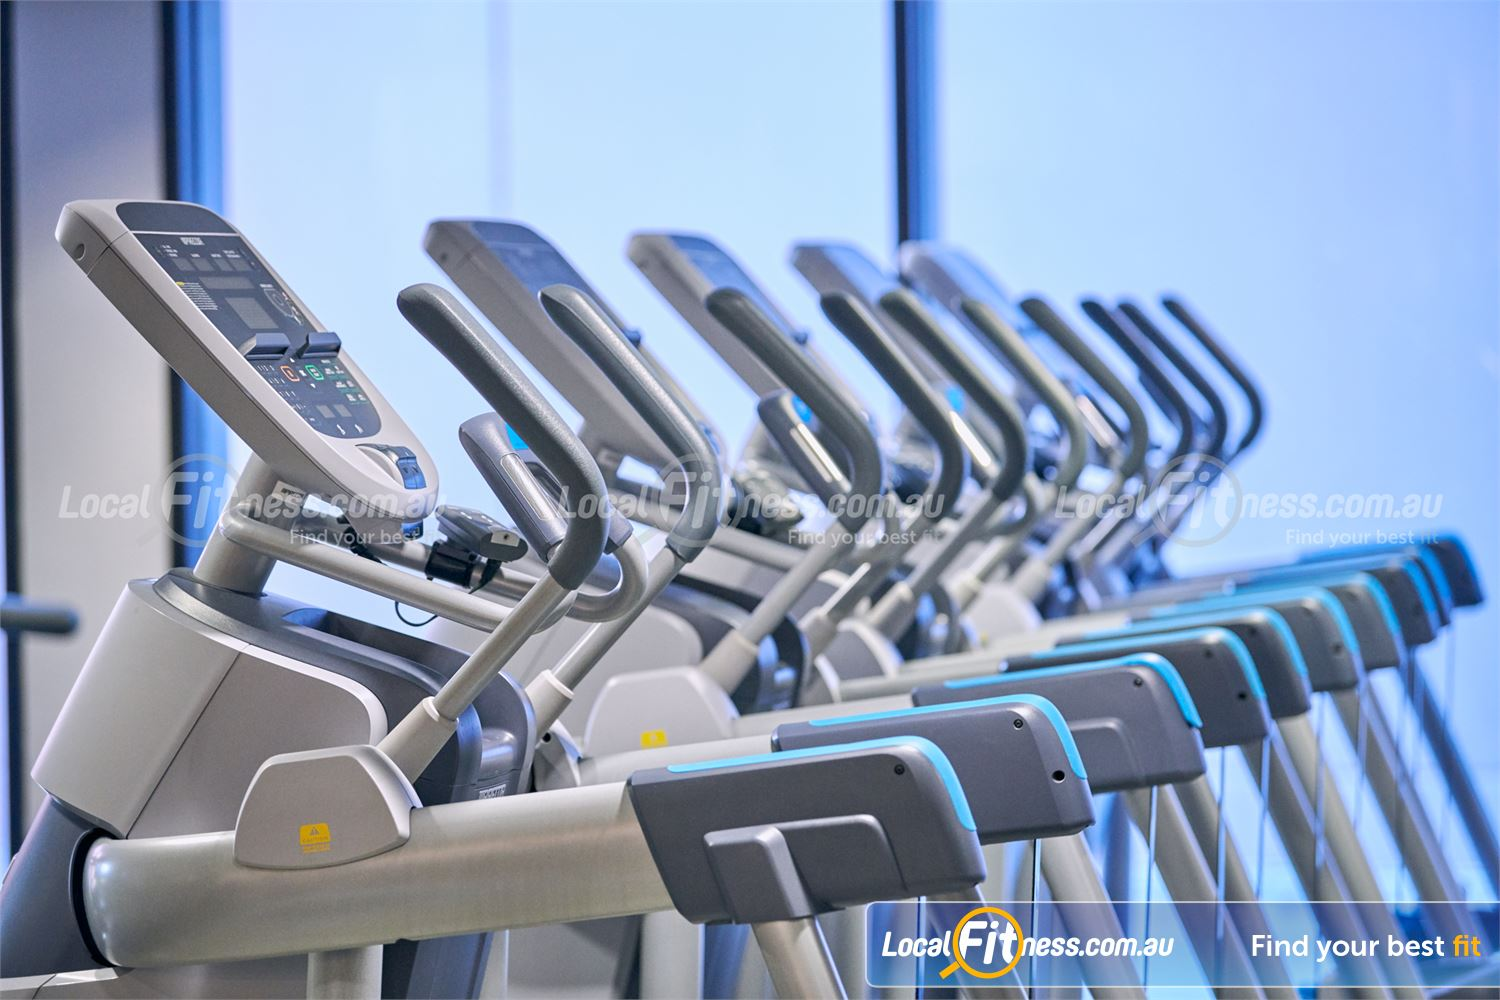 Fitness First Victoria Gardens Near South Yarra State of the art indoor steppers from Precor.